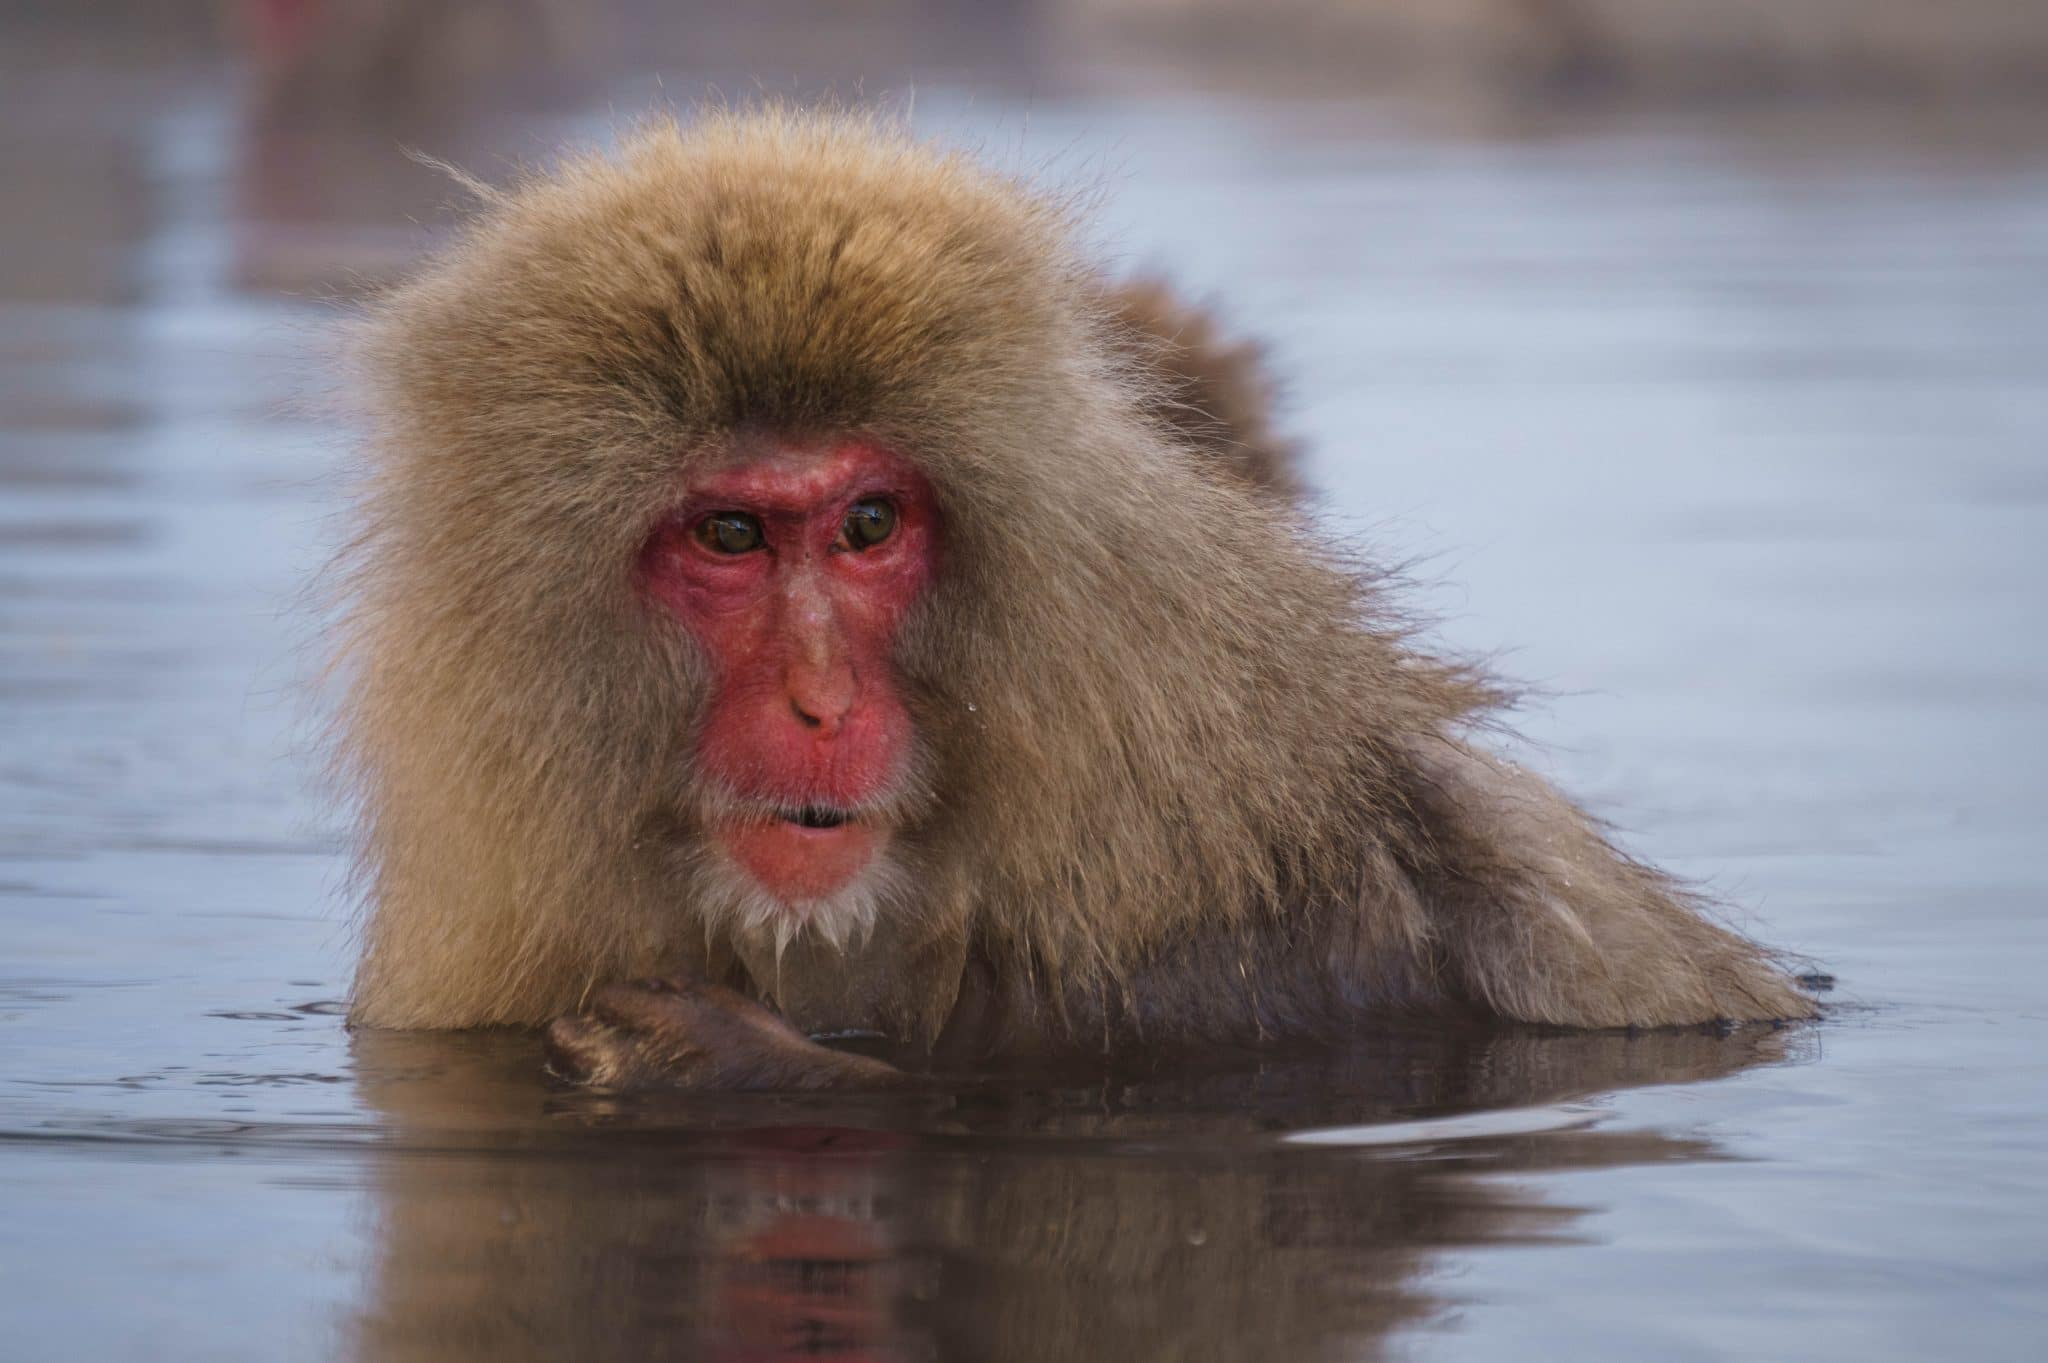 Snow Monkey at Jigokudani Park